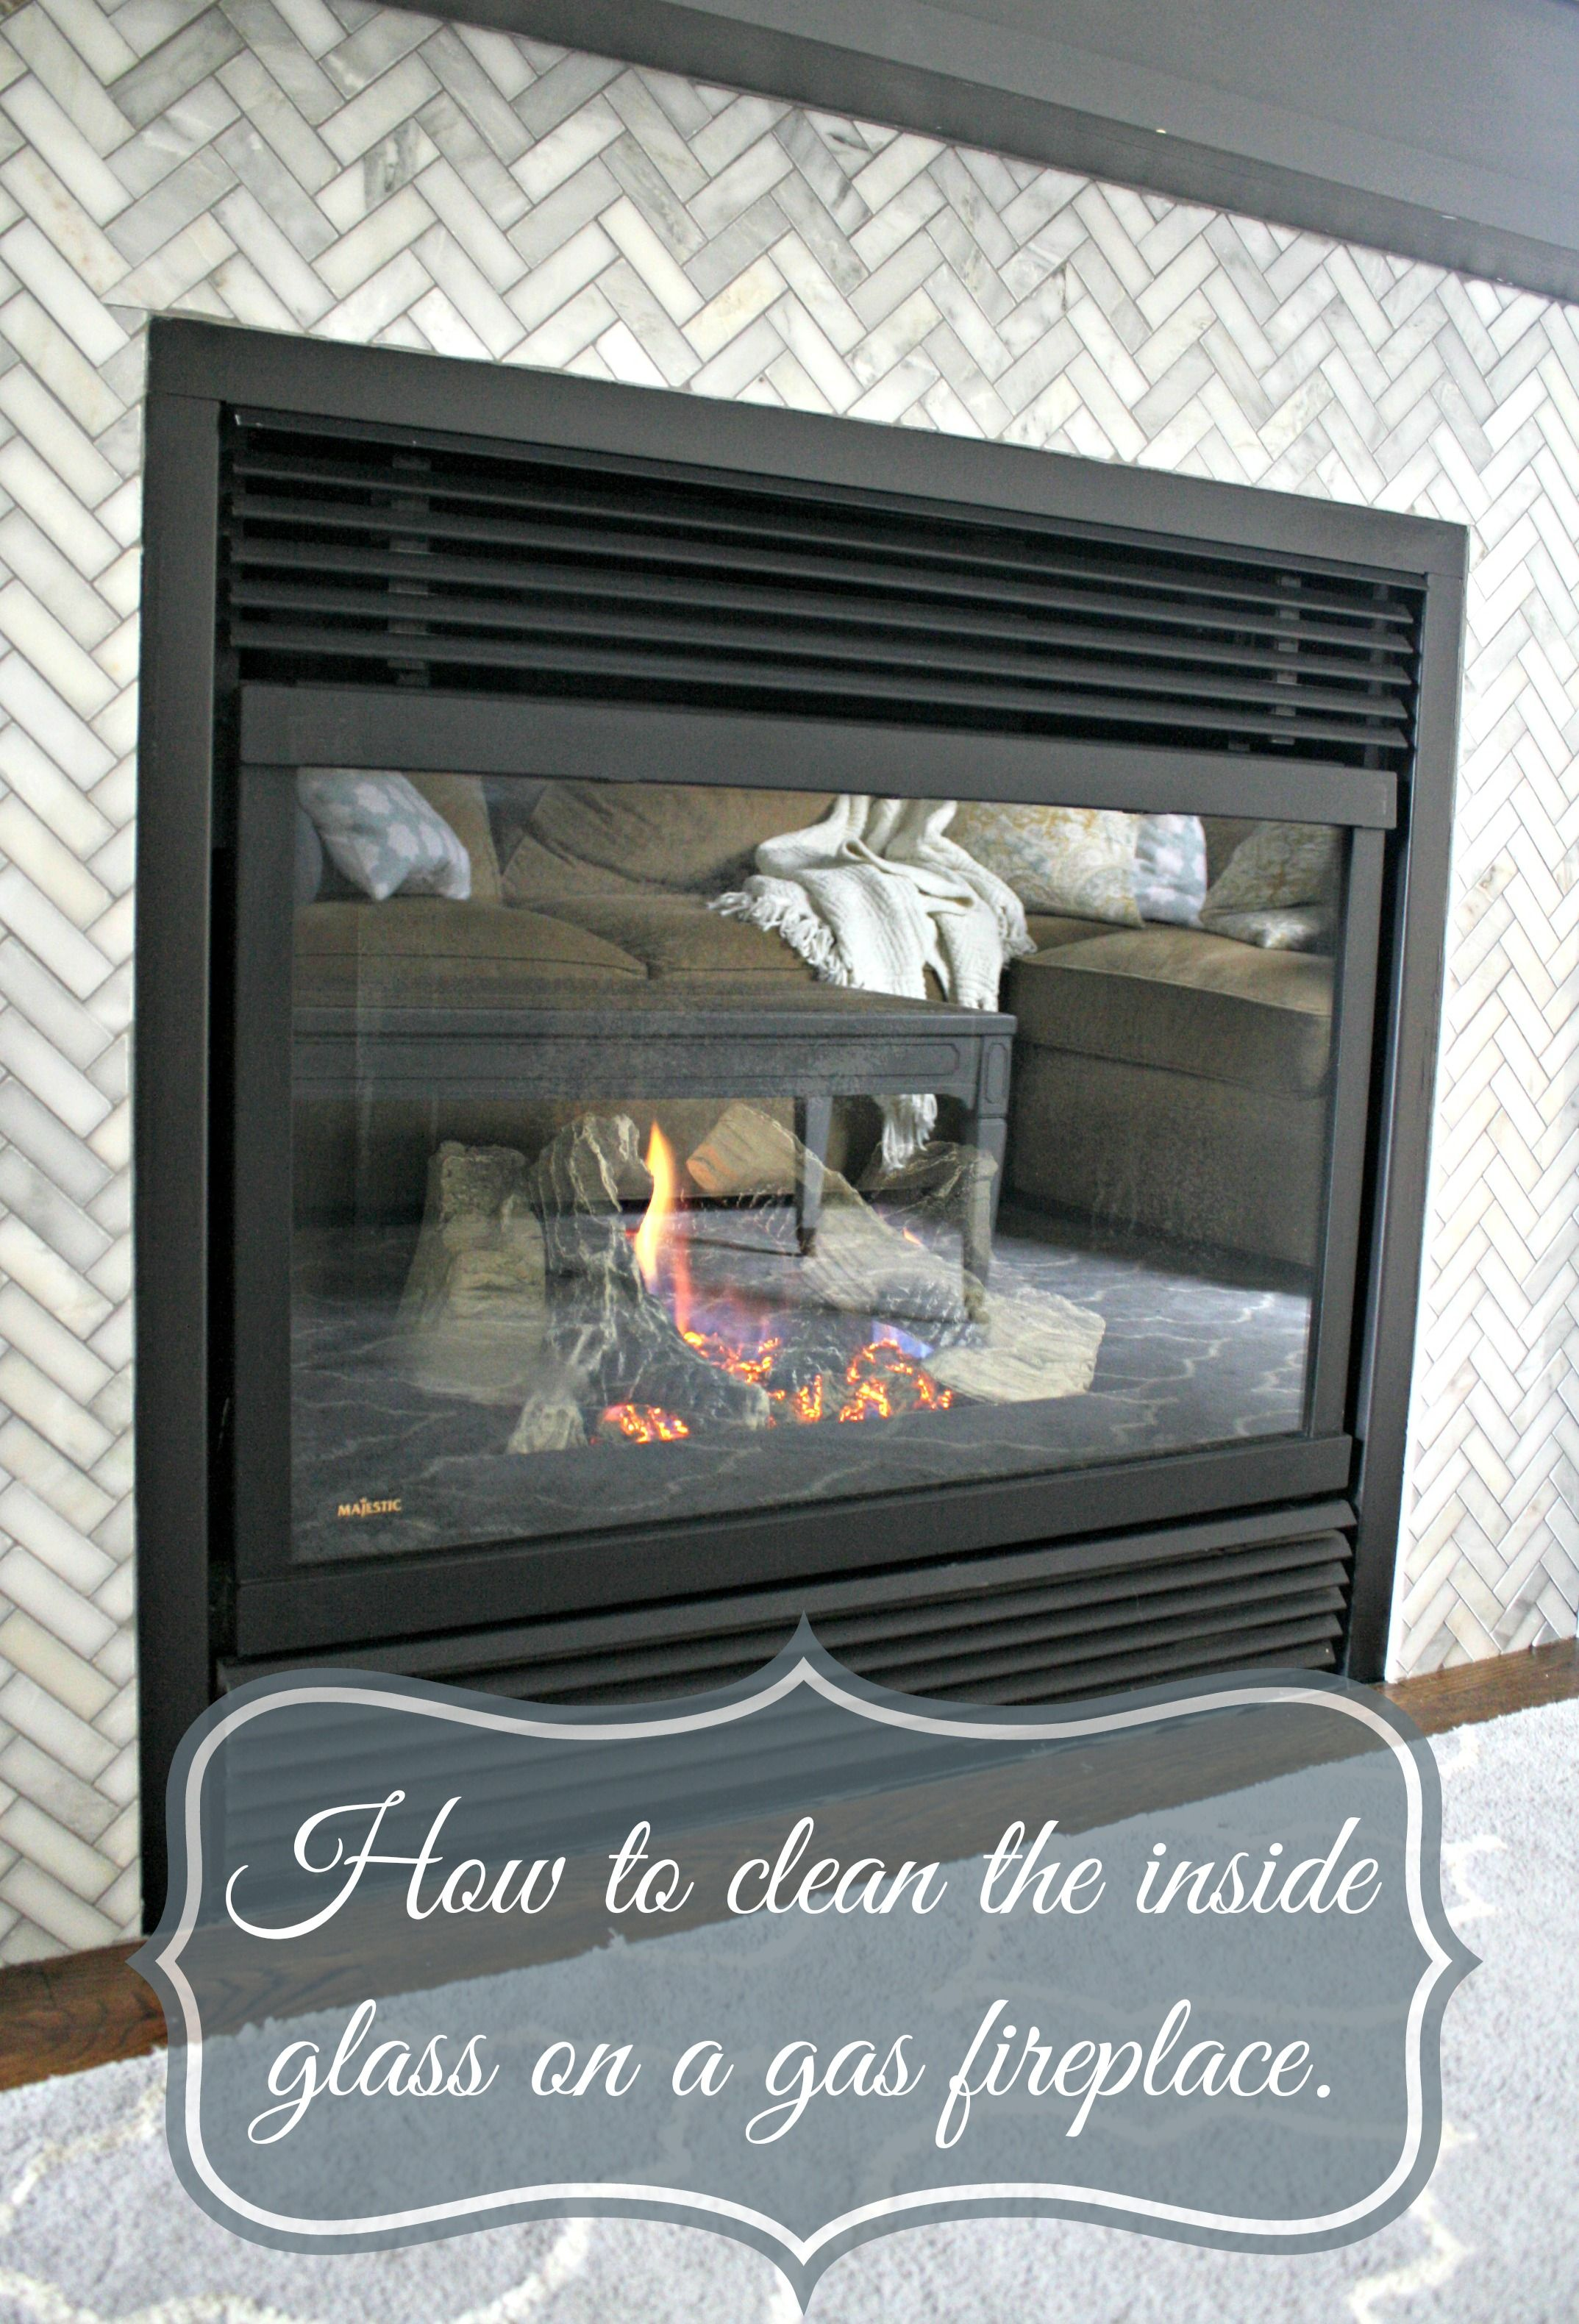 Simple And Quick Instructions On How To Clean The Inside